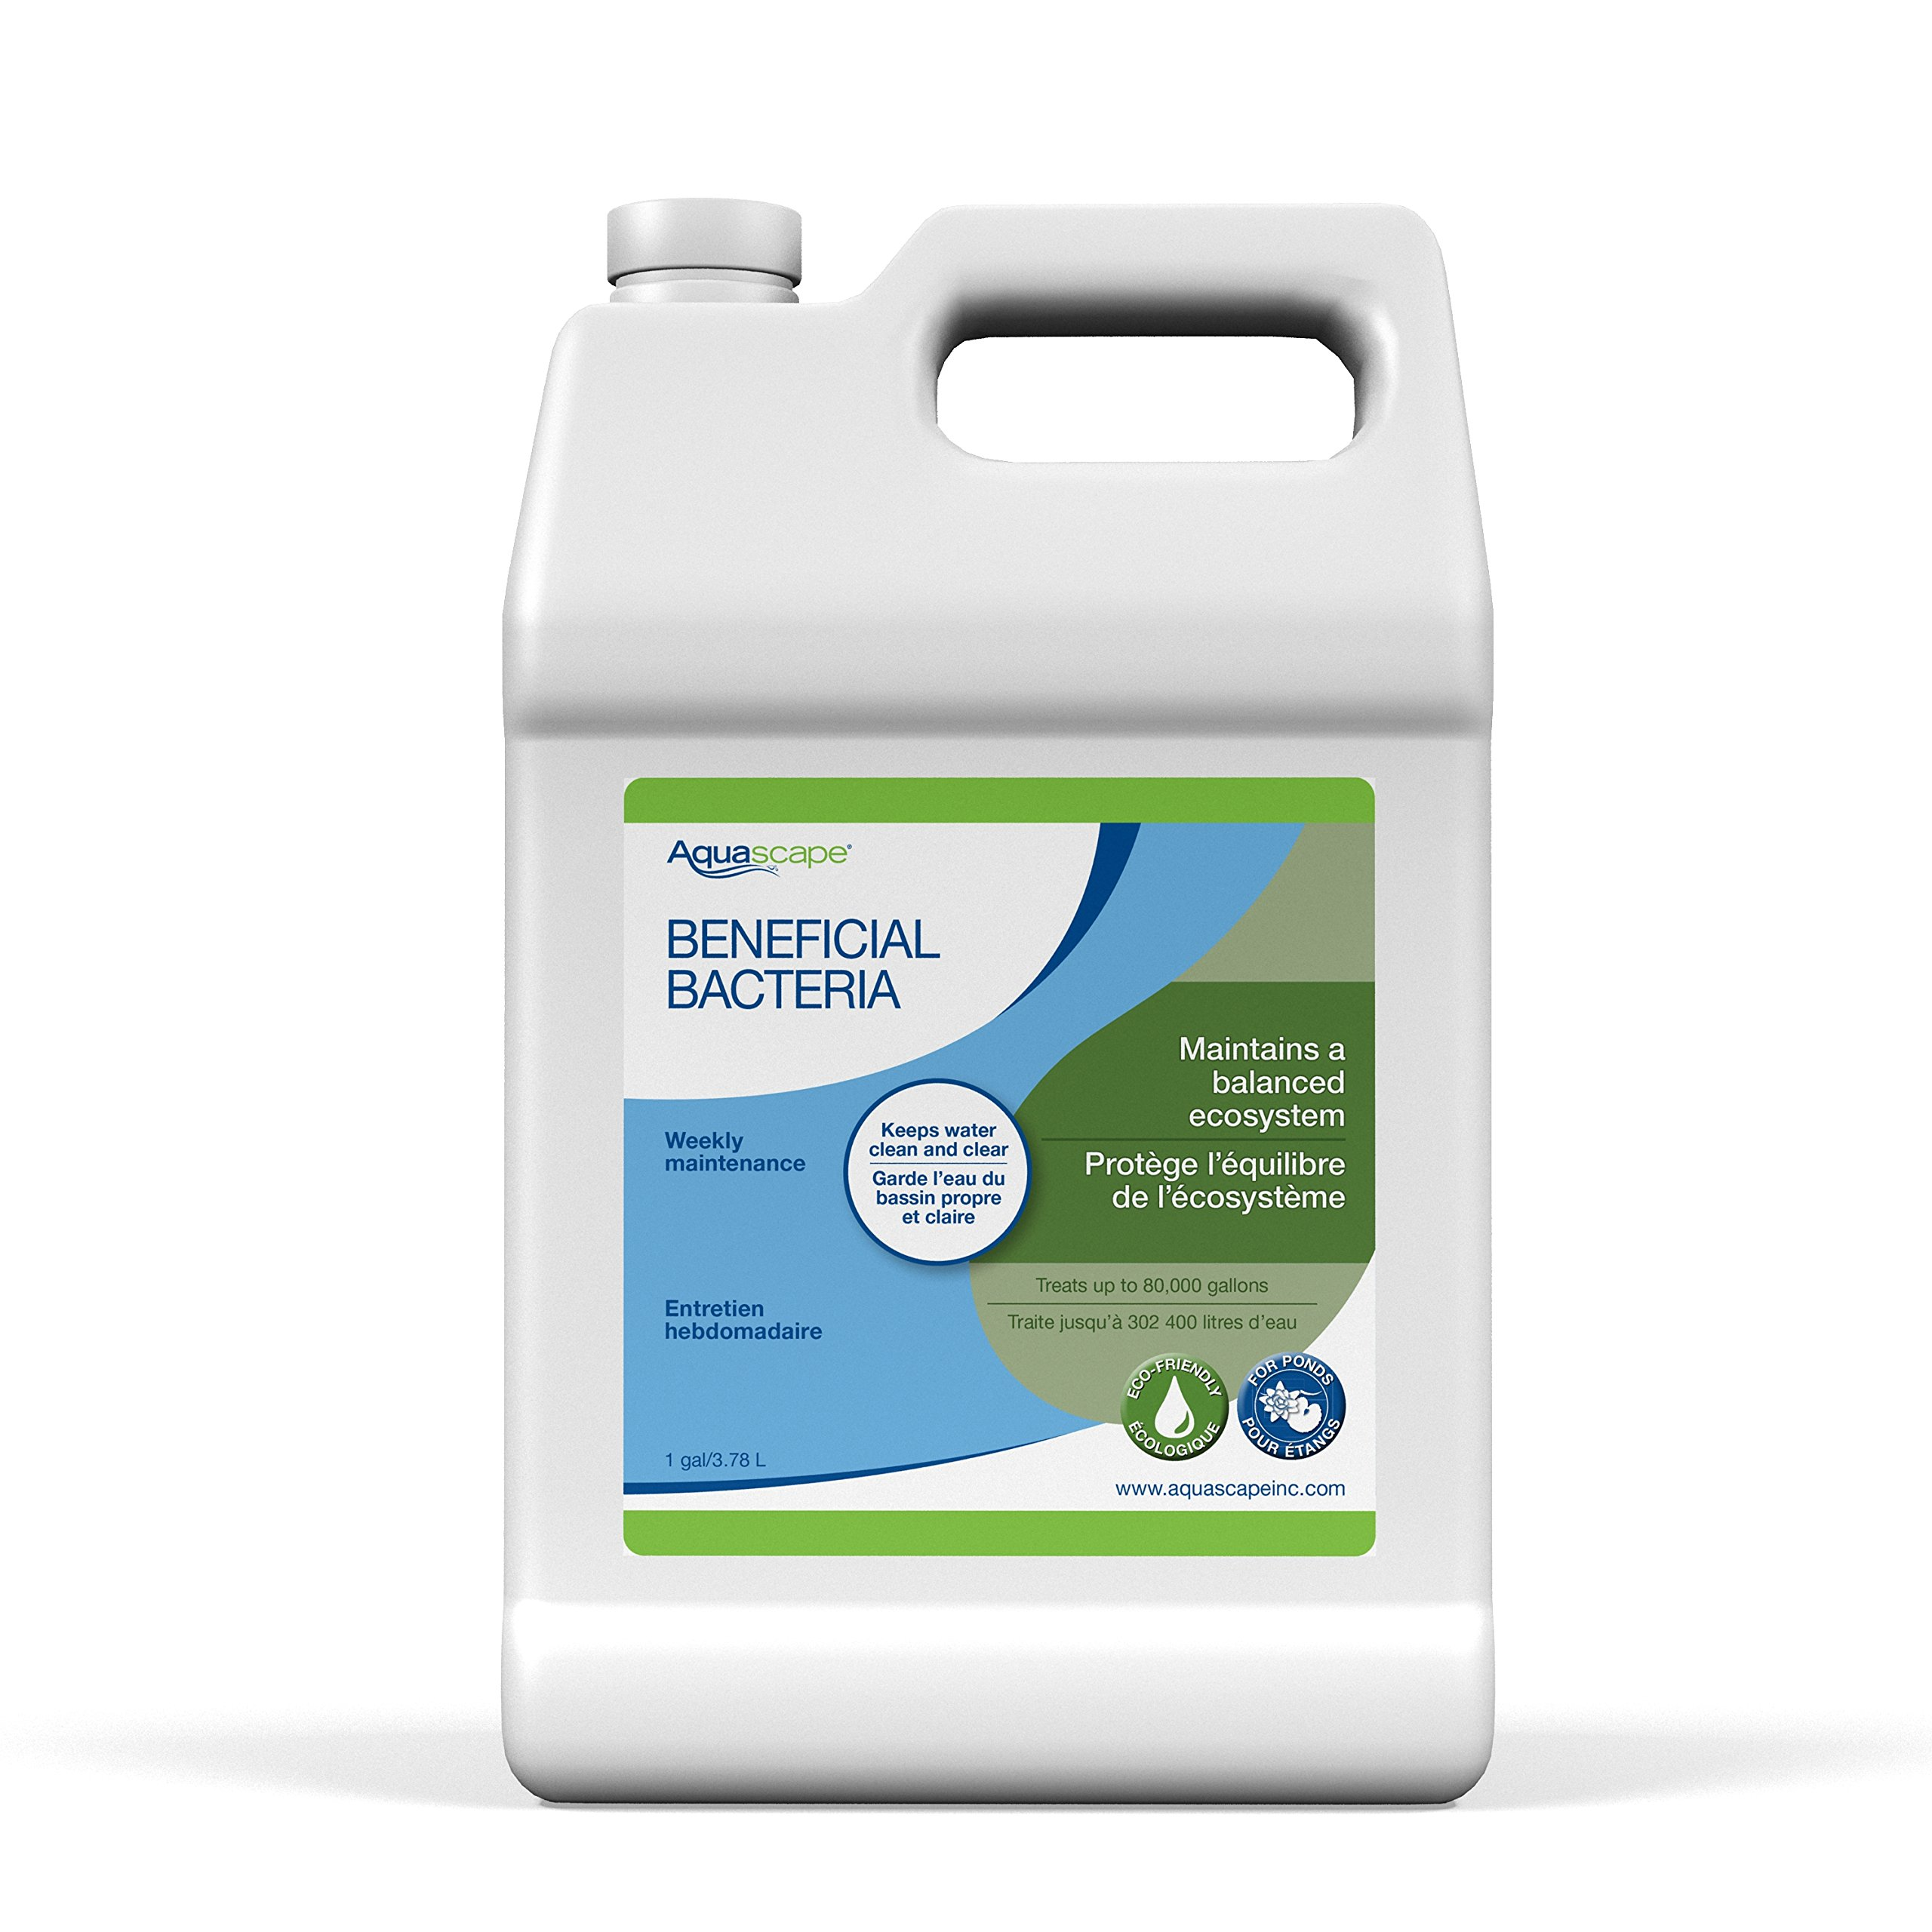 Aquascape Beneficial Bacteria for Pond and Water Features, Liquid, 1-Gallon Bottle   98885